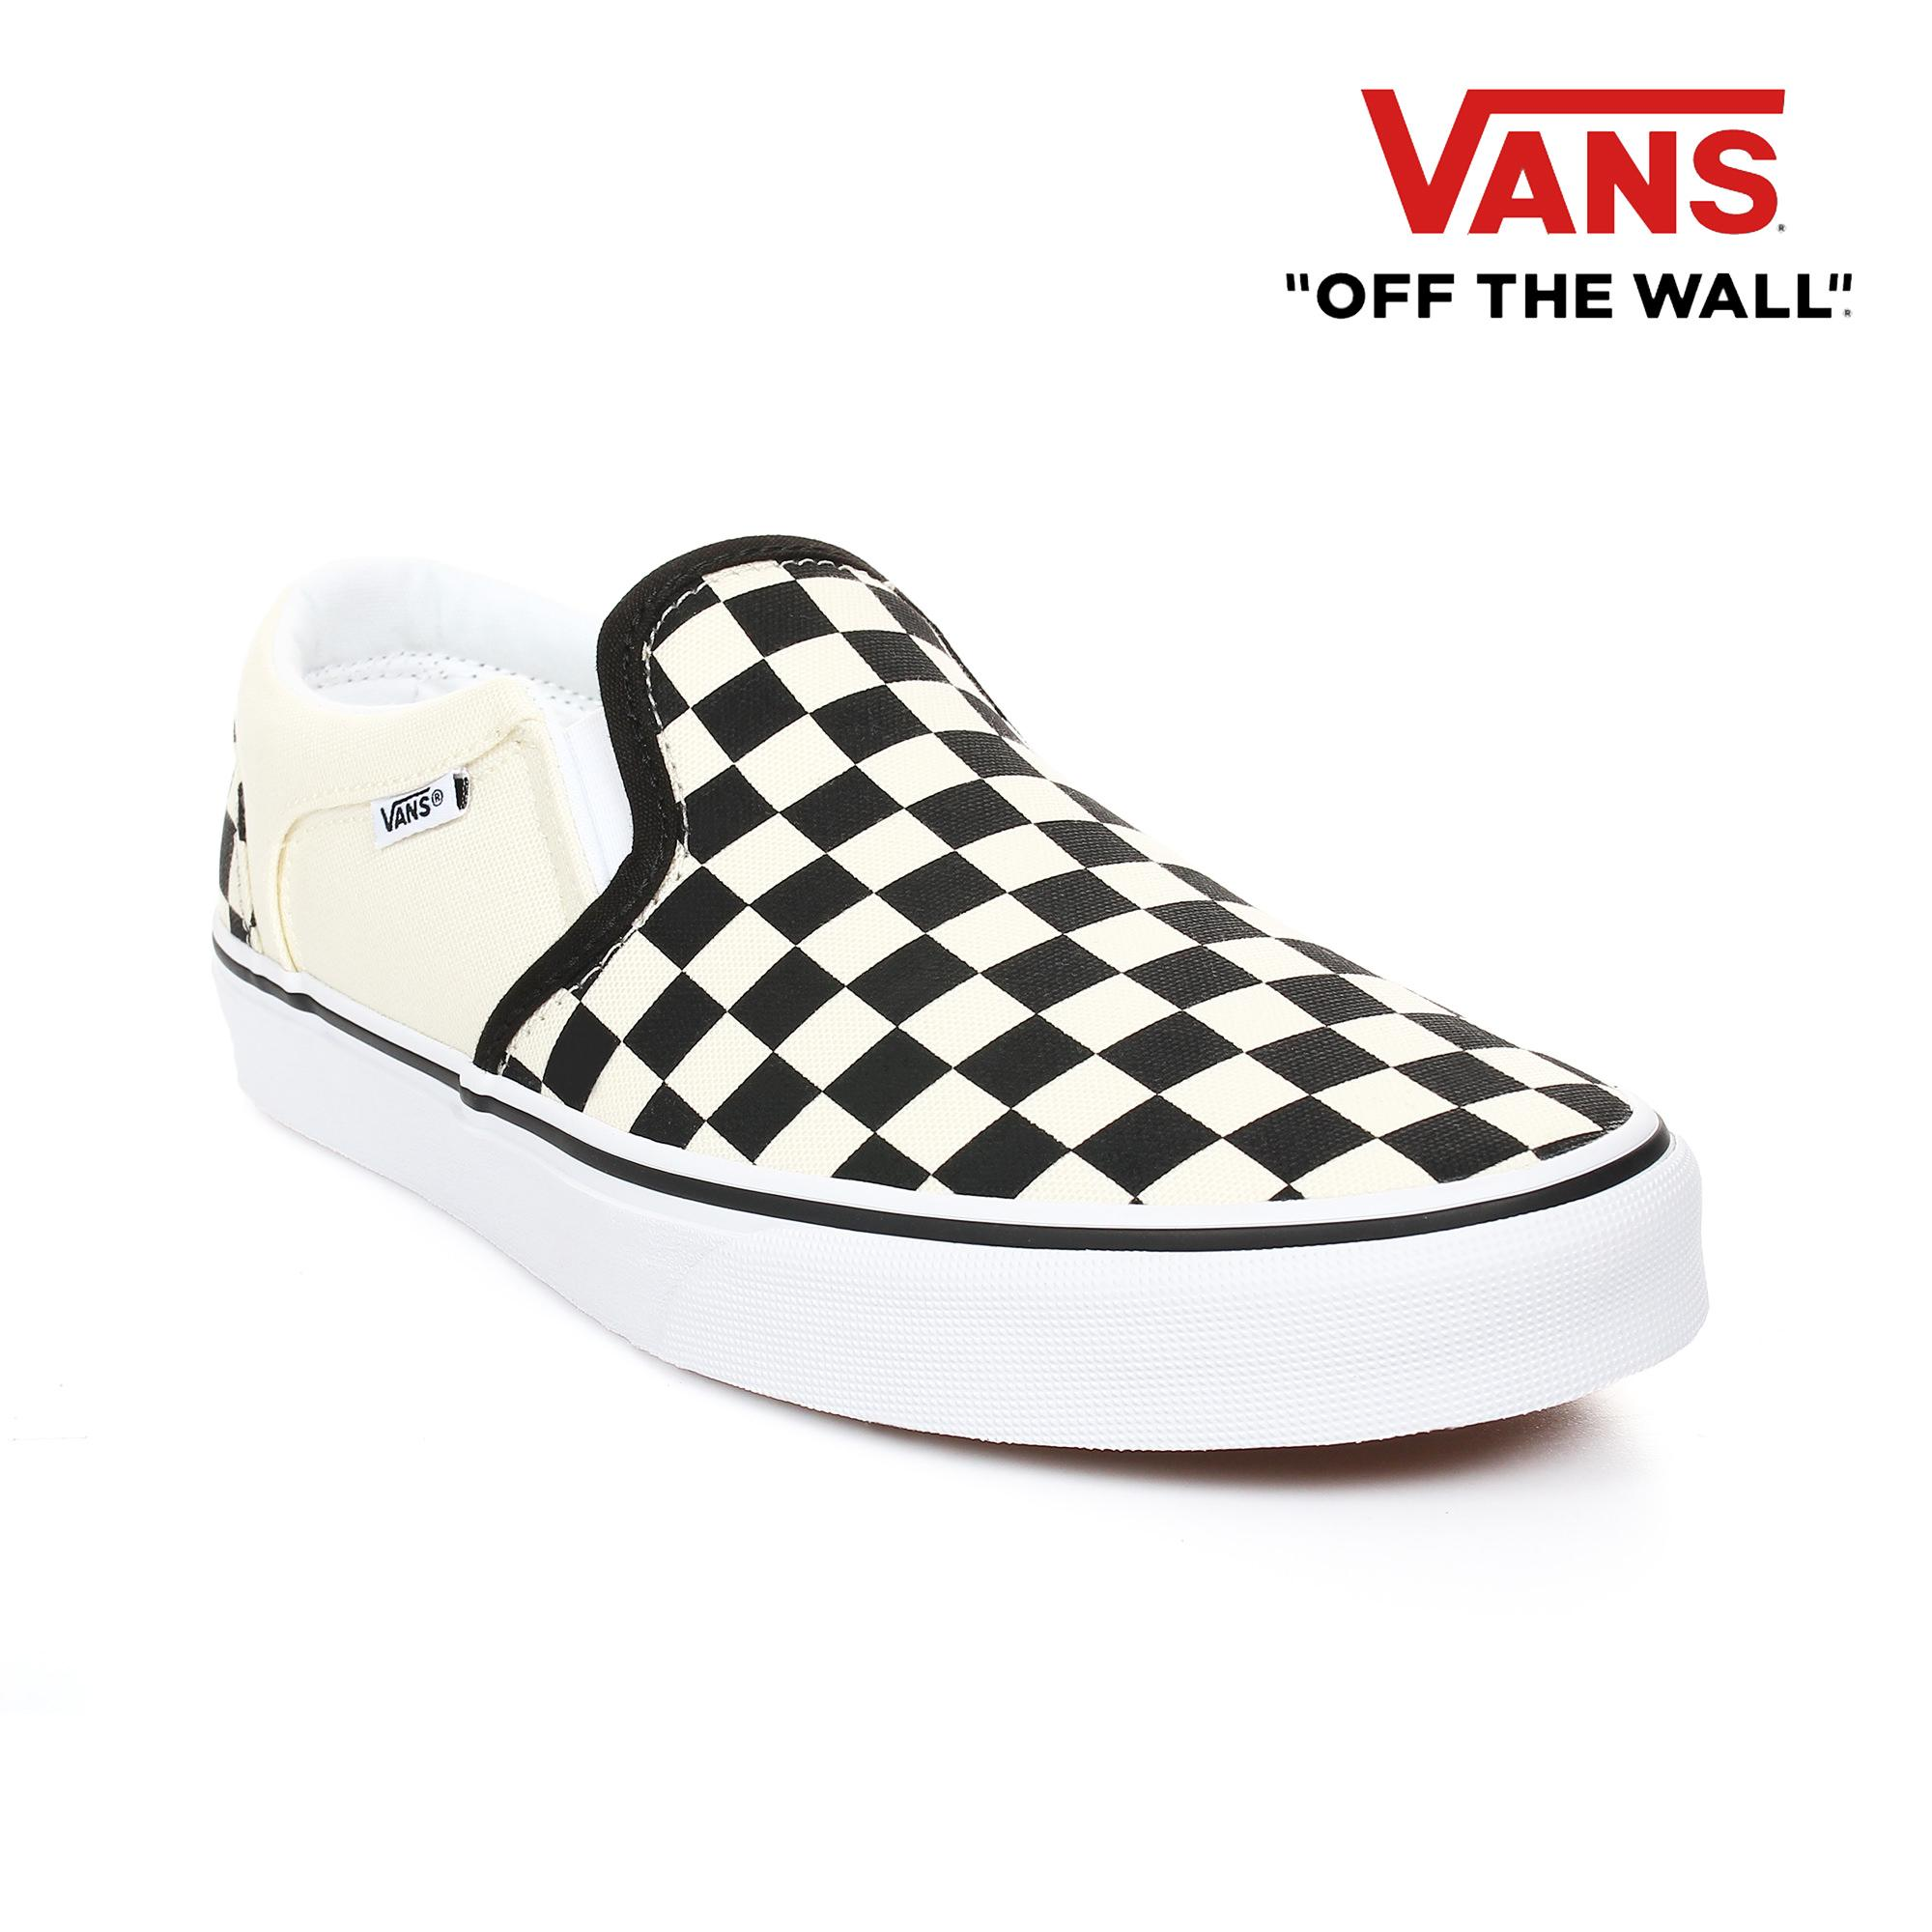 1d1f27492fbf2 Vans Men's Asher Checkers Canvas Sneakers